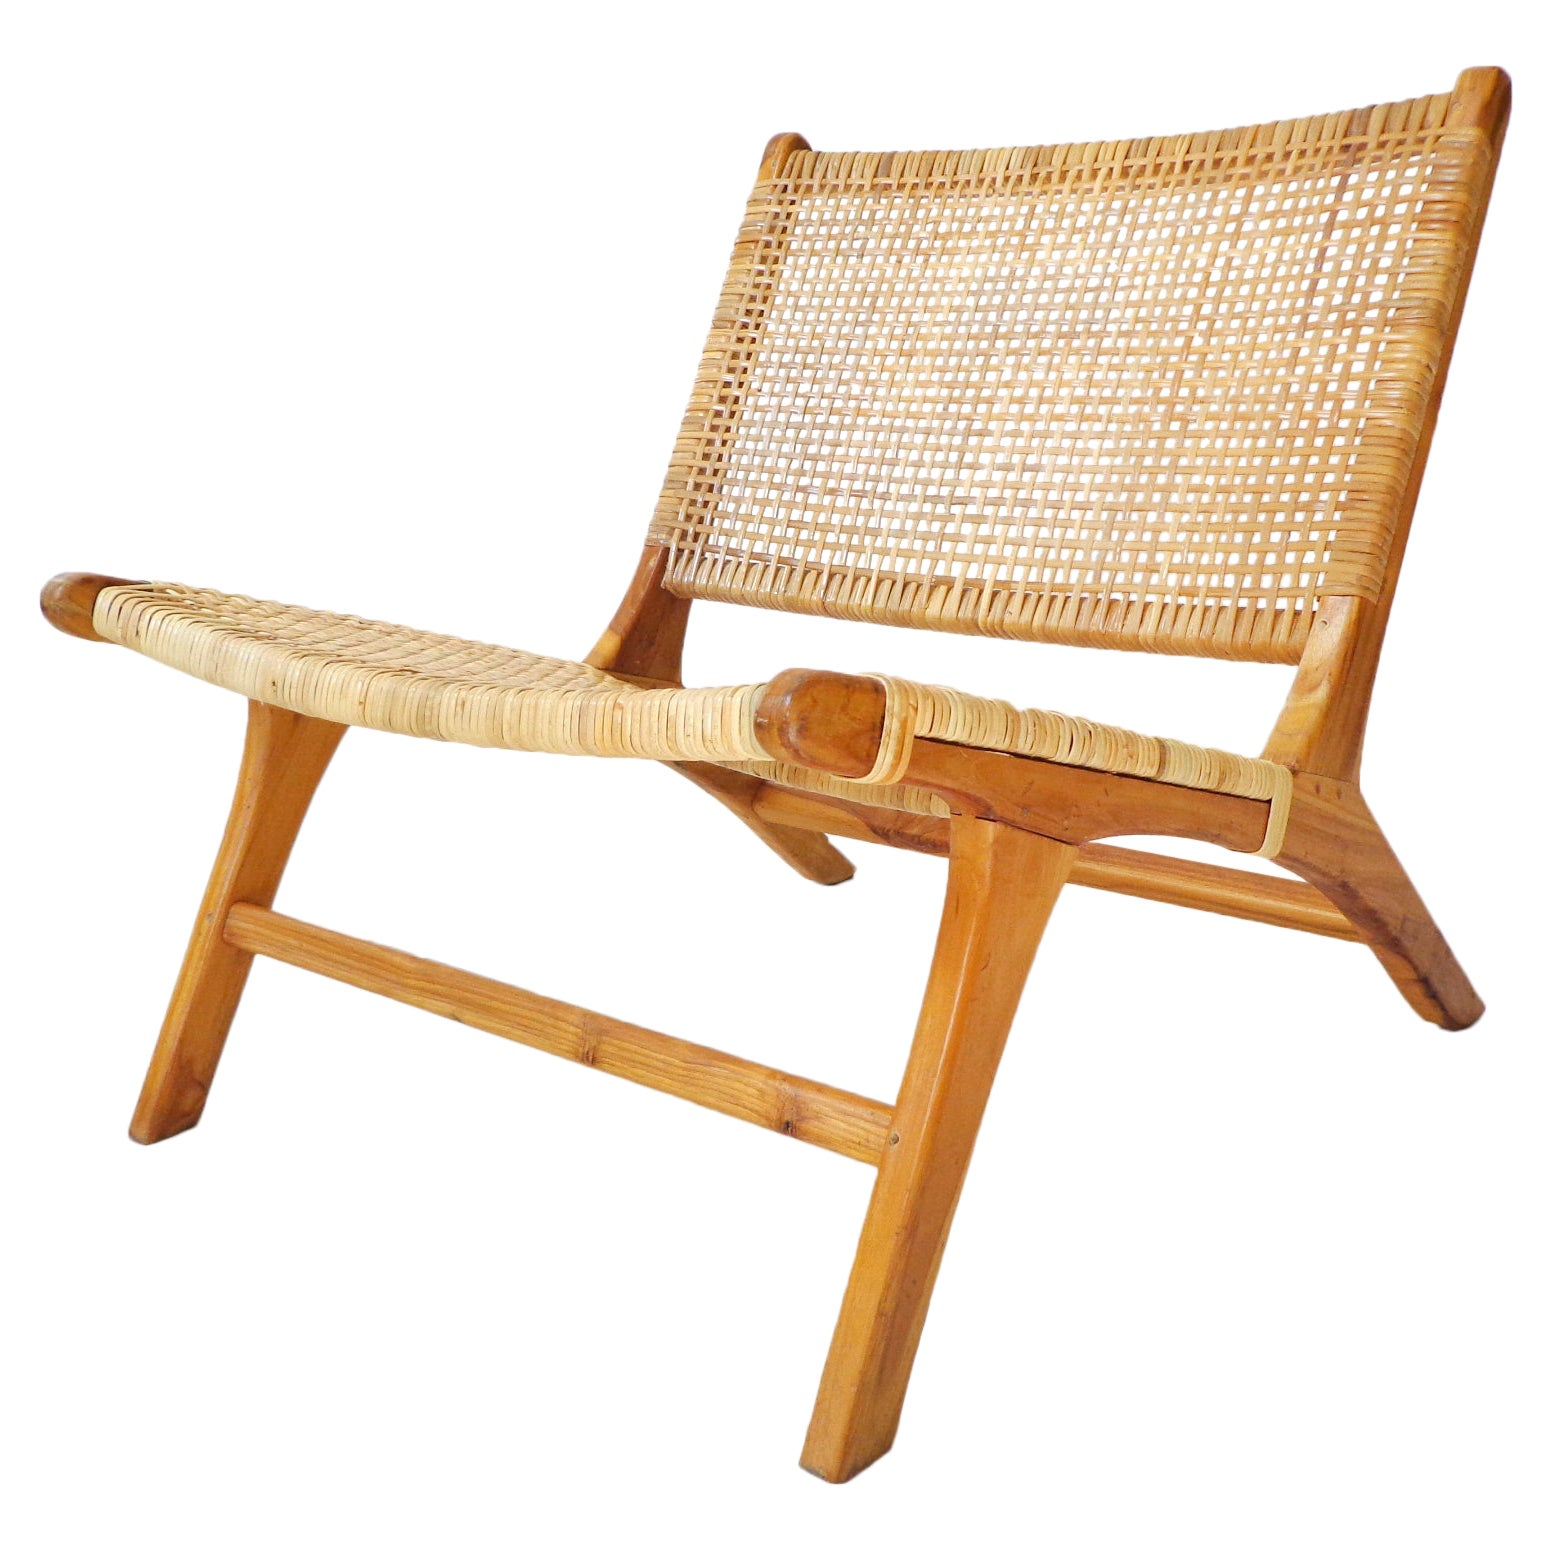 Lounge Chair in Cane and Solid Wood, Brazilian & Midcentury Style, Modern